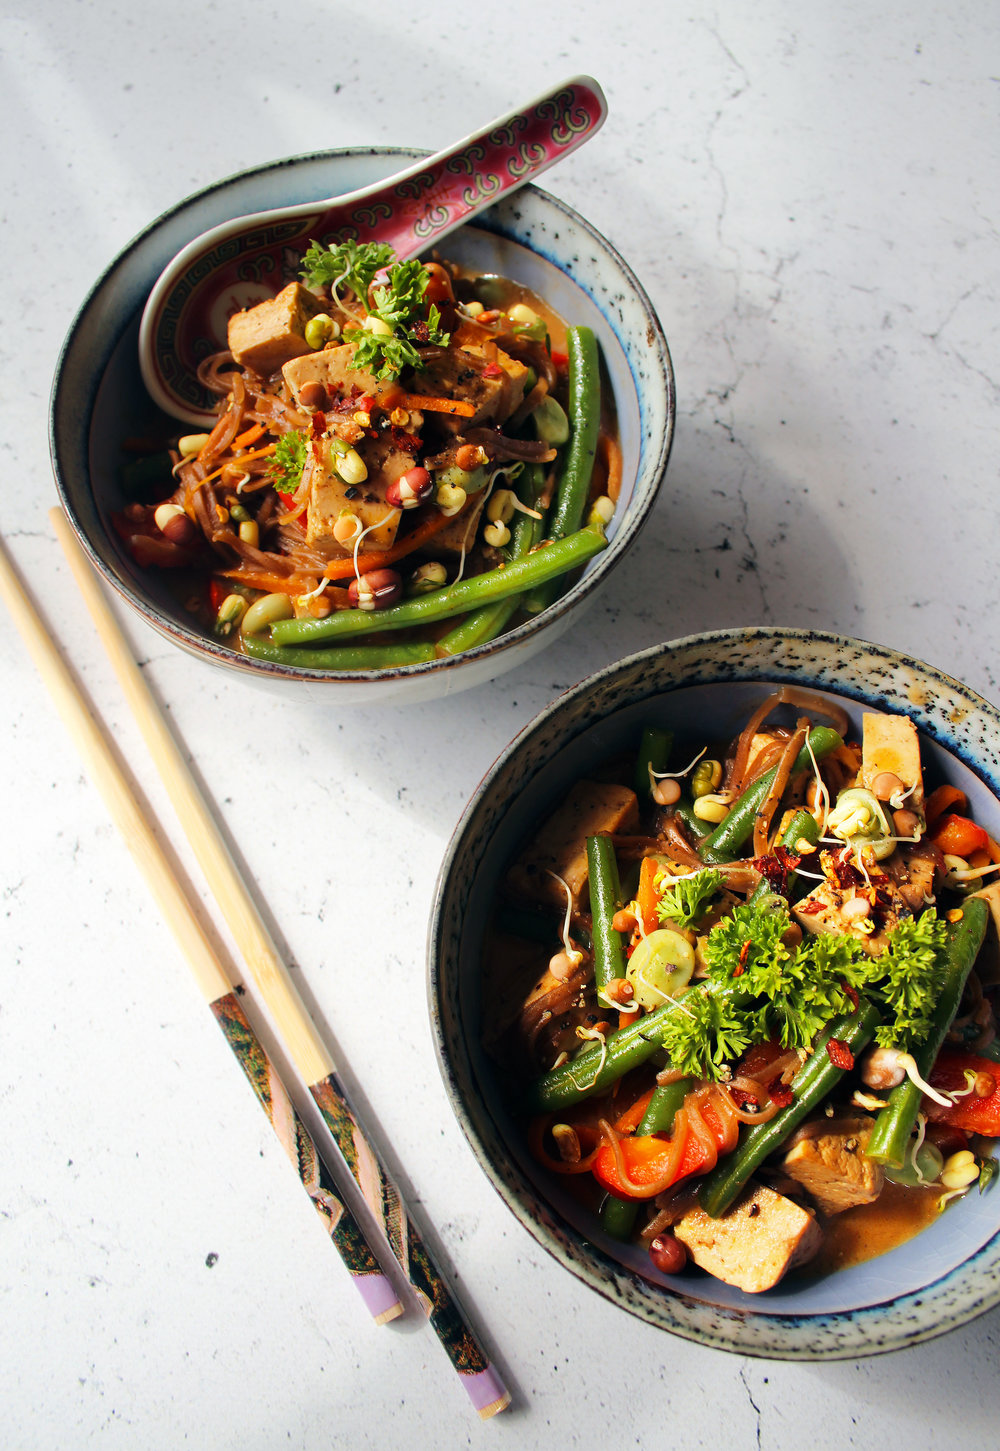 Spicy tofu recipe | The Flourishing Pantry